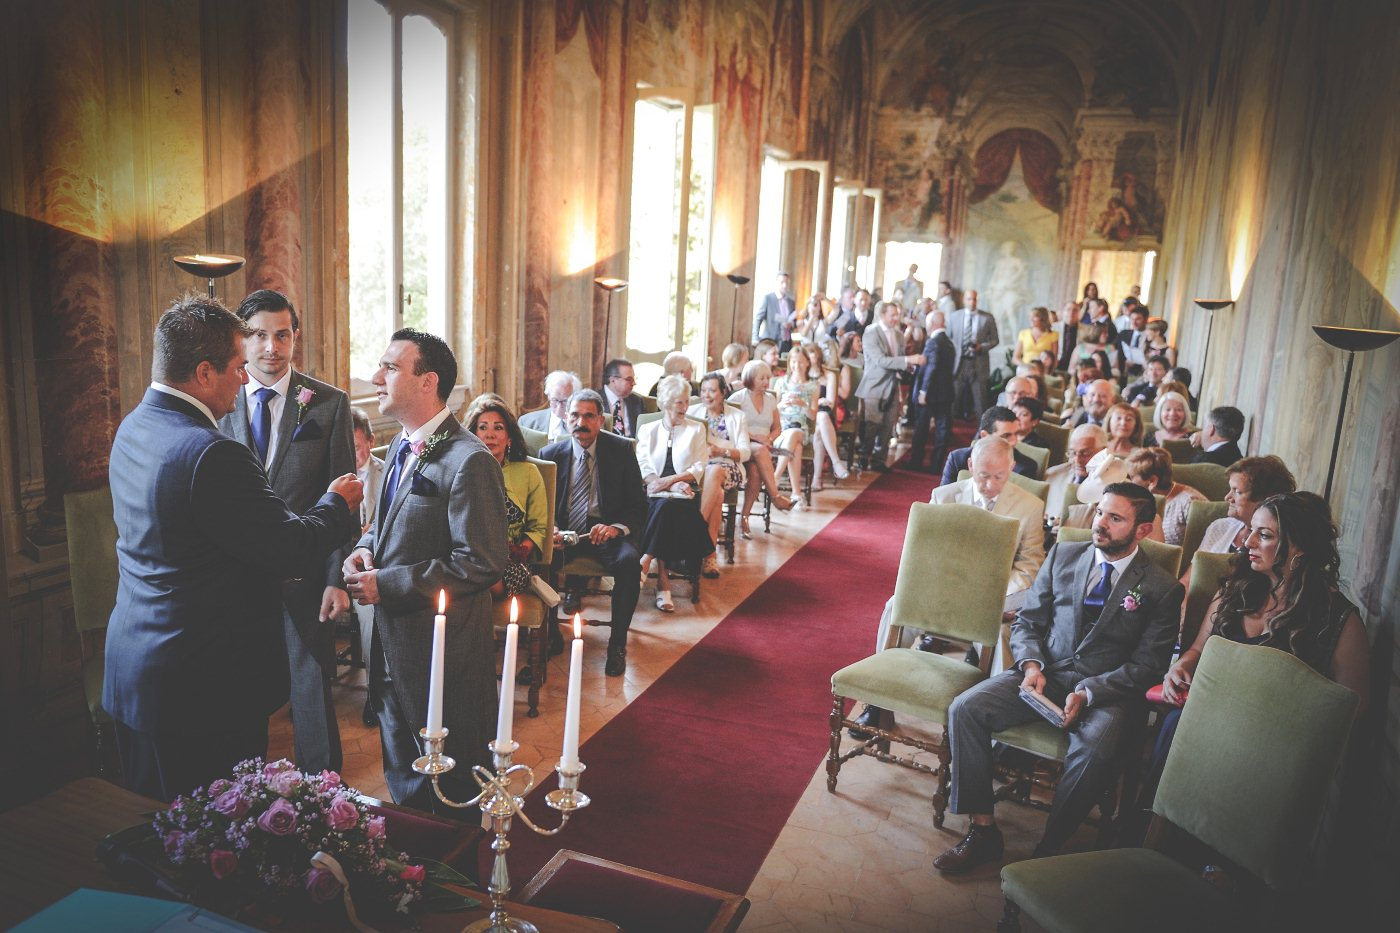 wedding photo villa grazioli_01.jpg